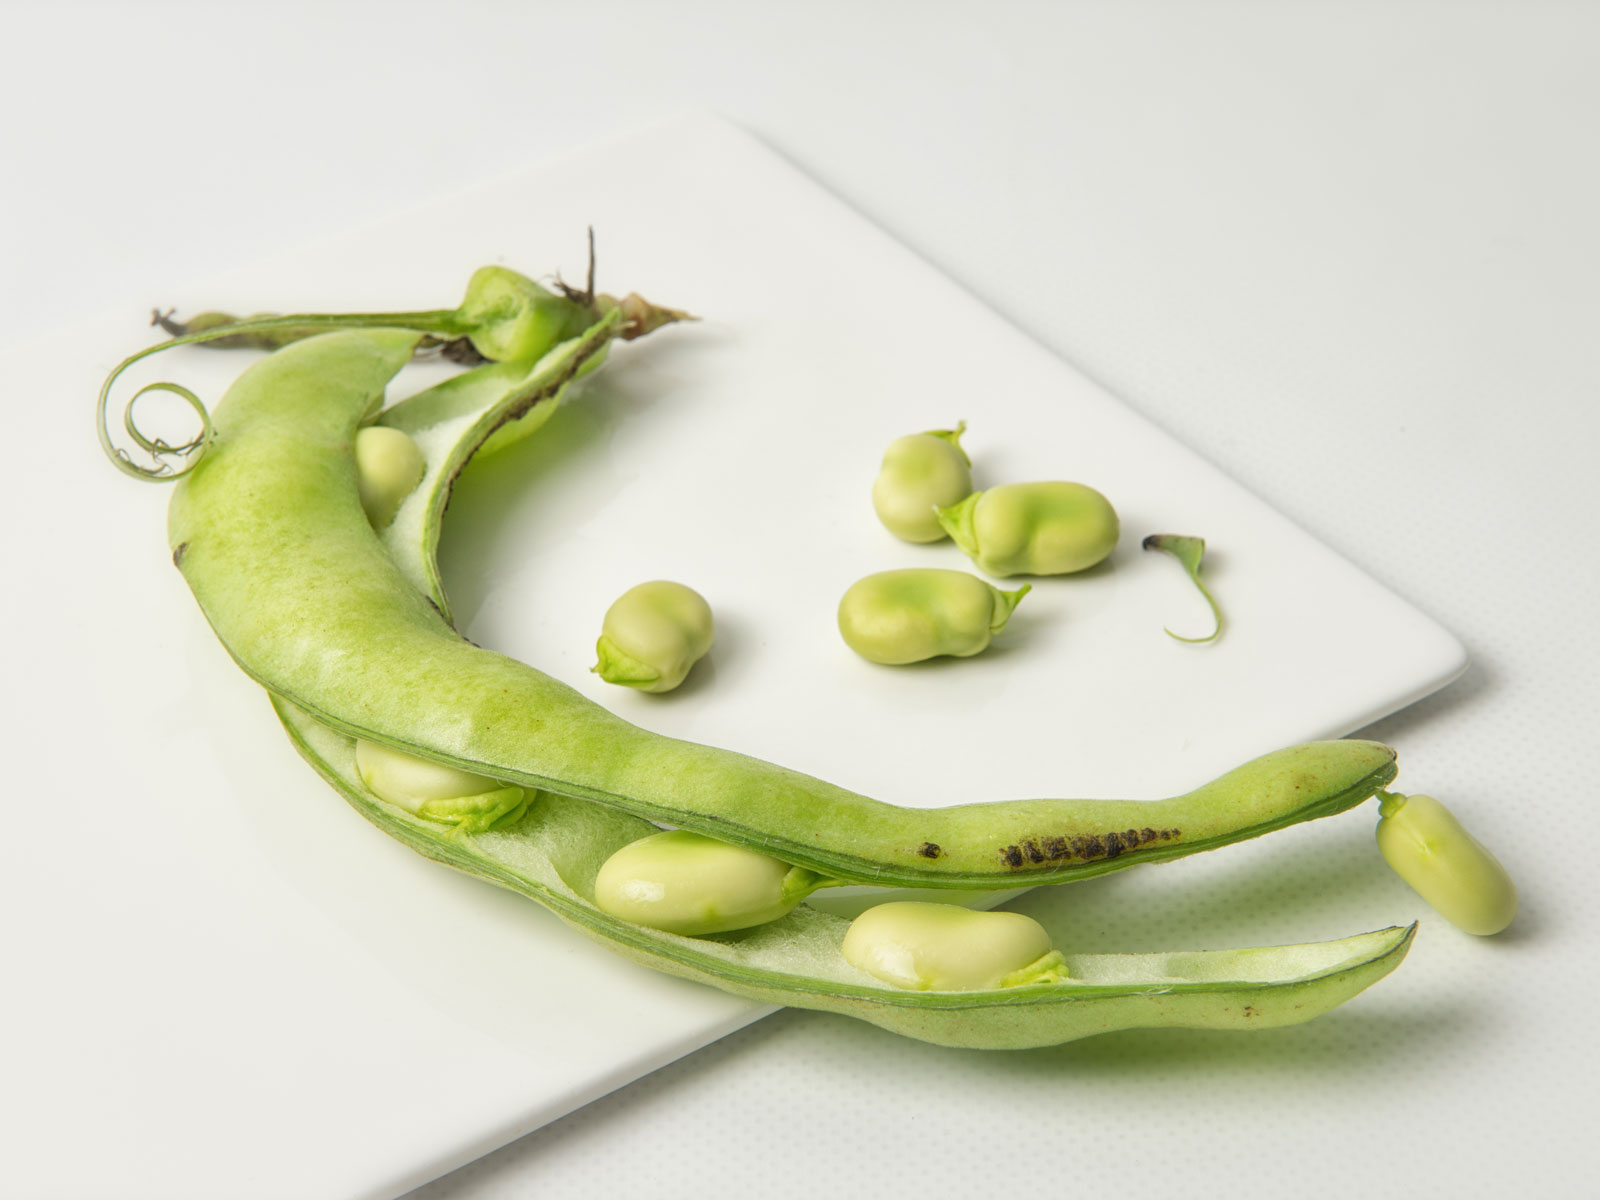 17 Chefs on Their Favorite Ways to Cook Fava Beans